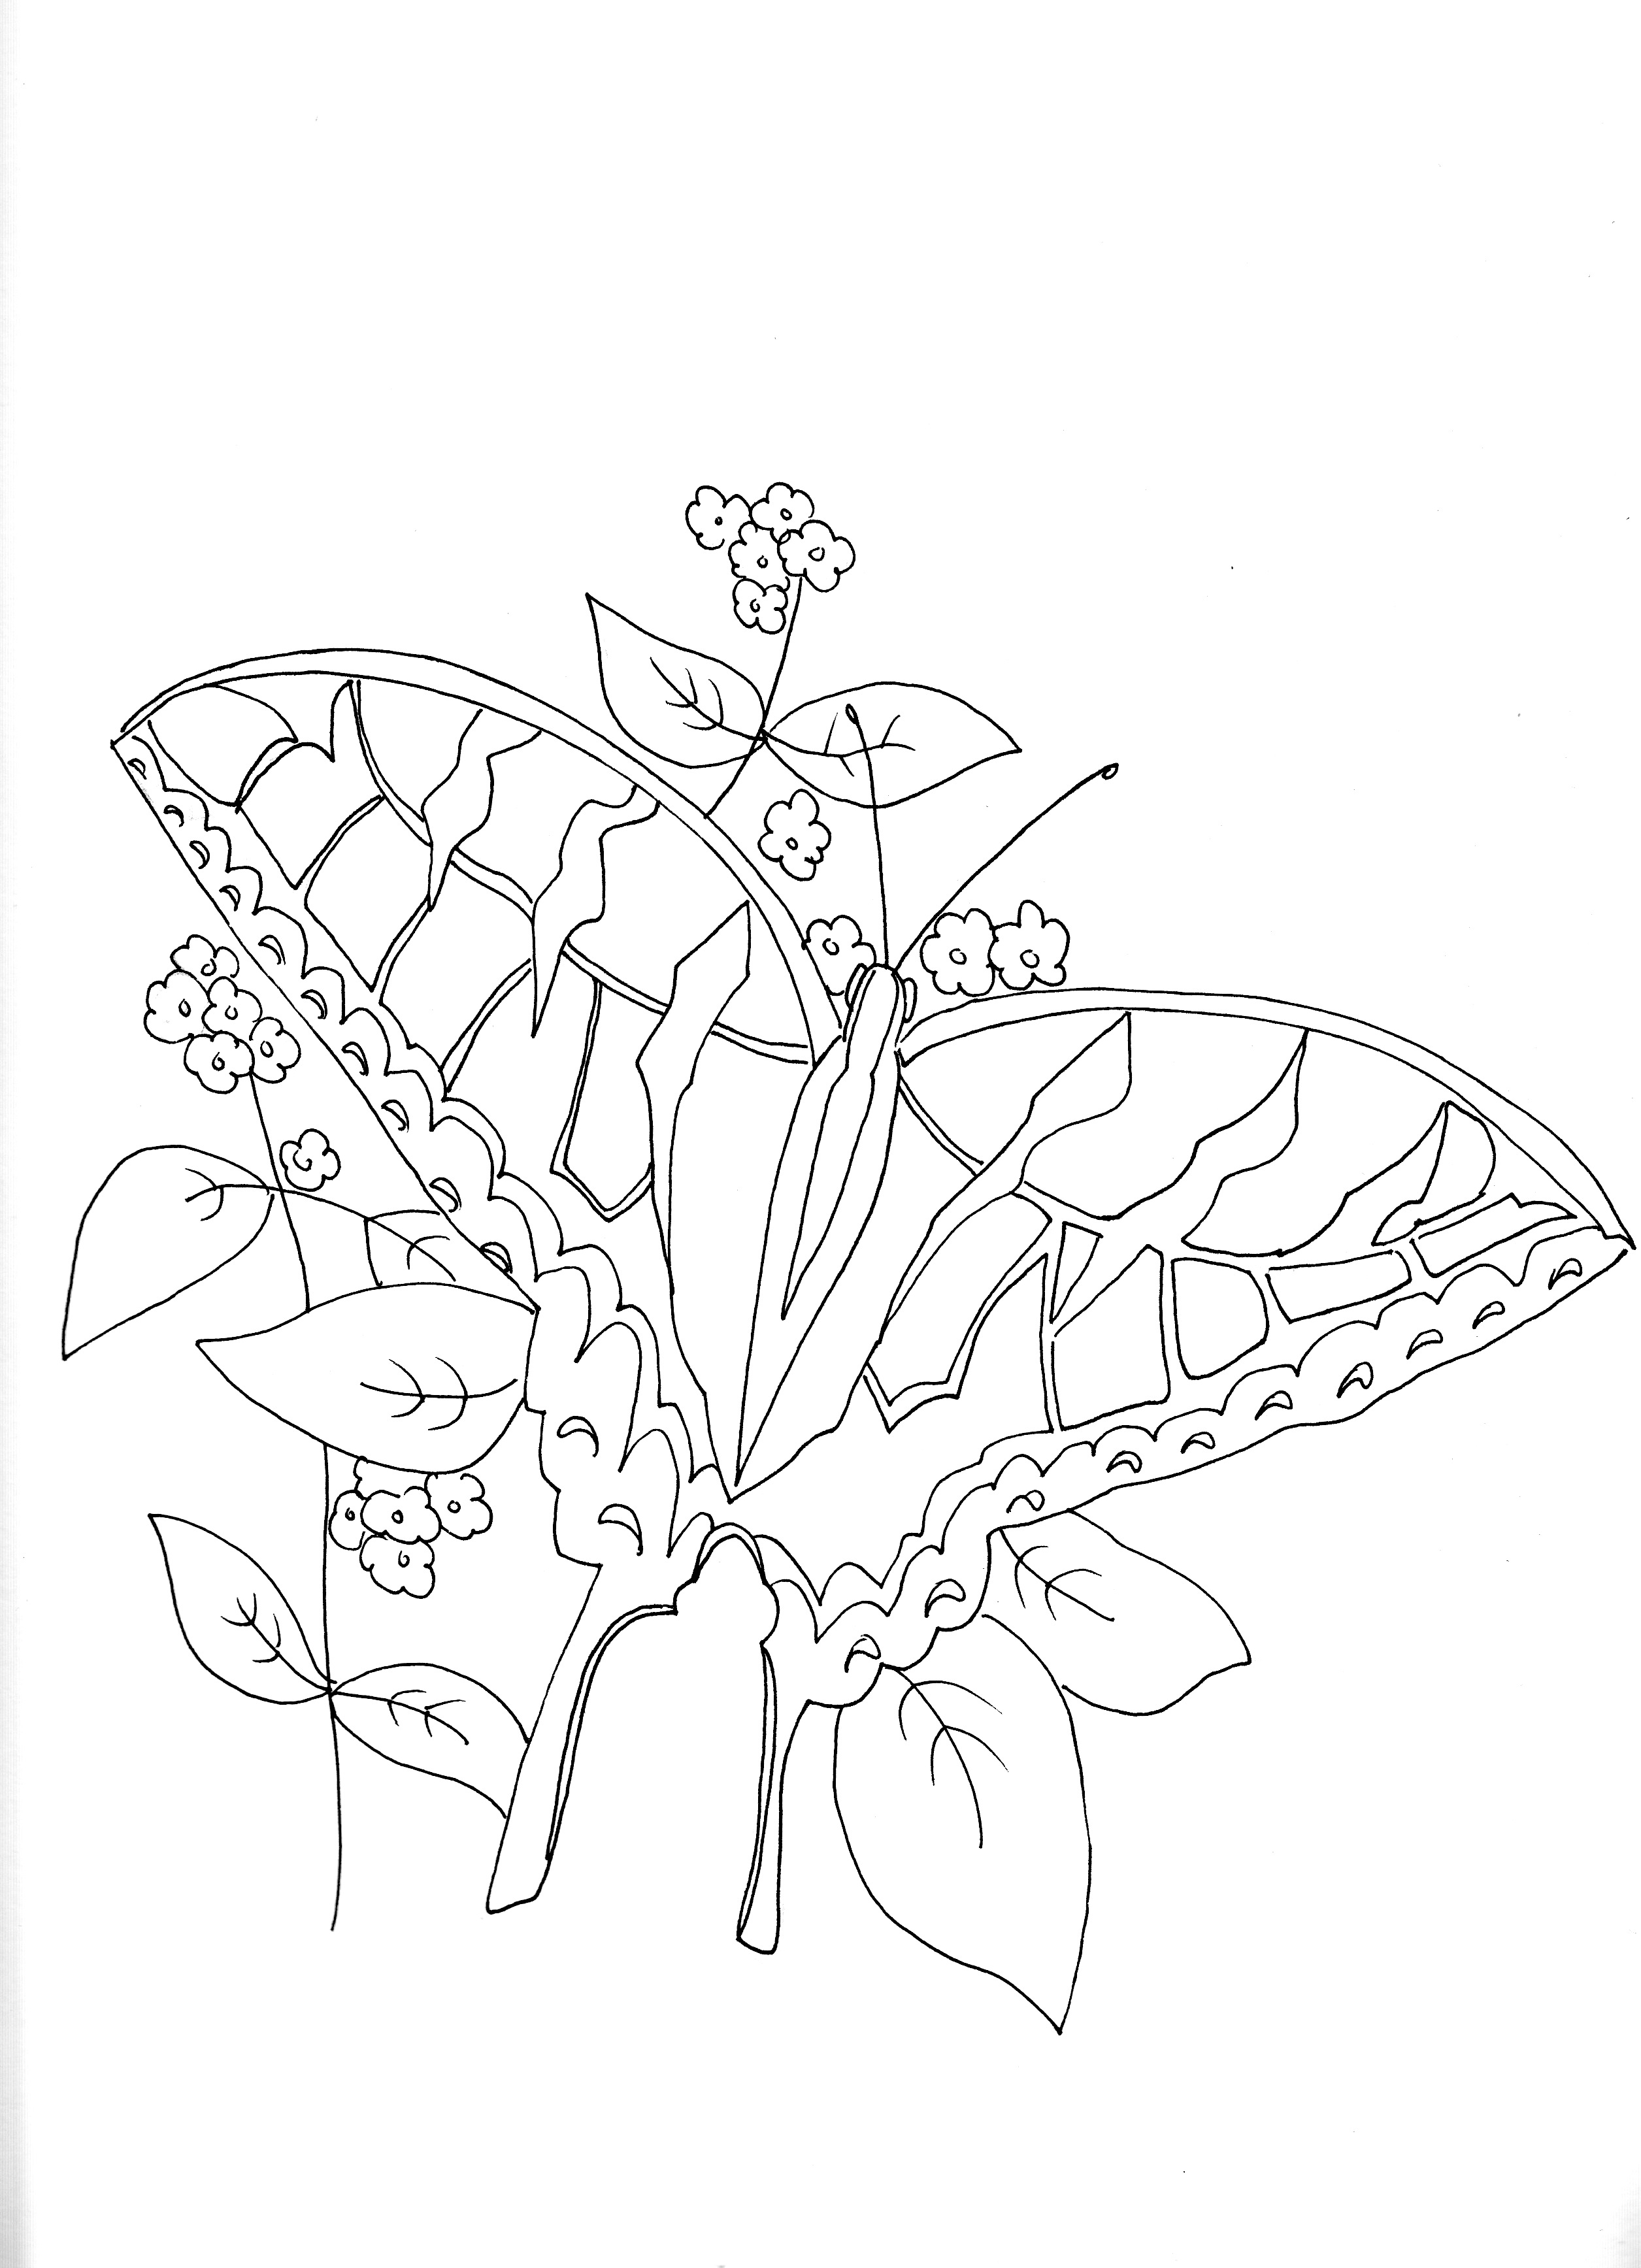 Amazing Camo Free Coloring Pages On Art Coloring Pages